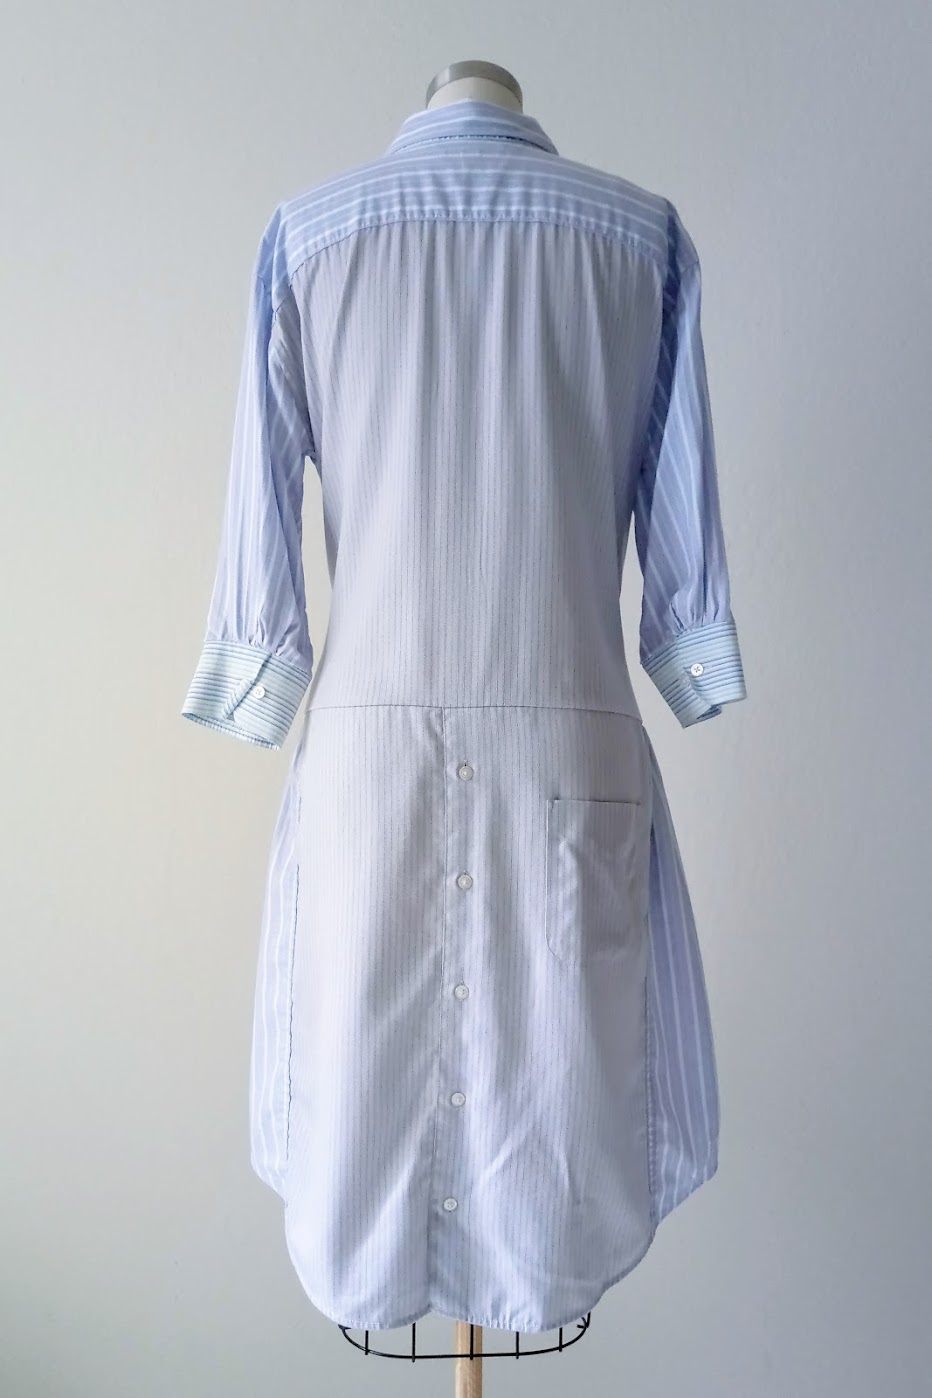 Shirt Dress with Bow Detail - DIY Fashion project | fafafoom.com